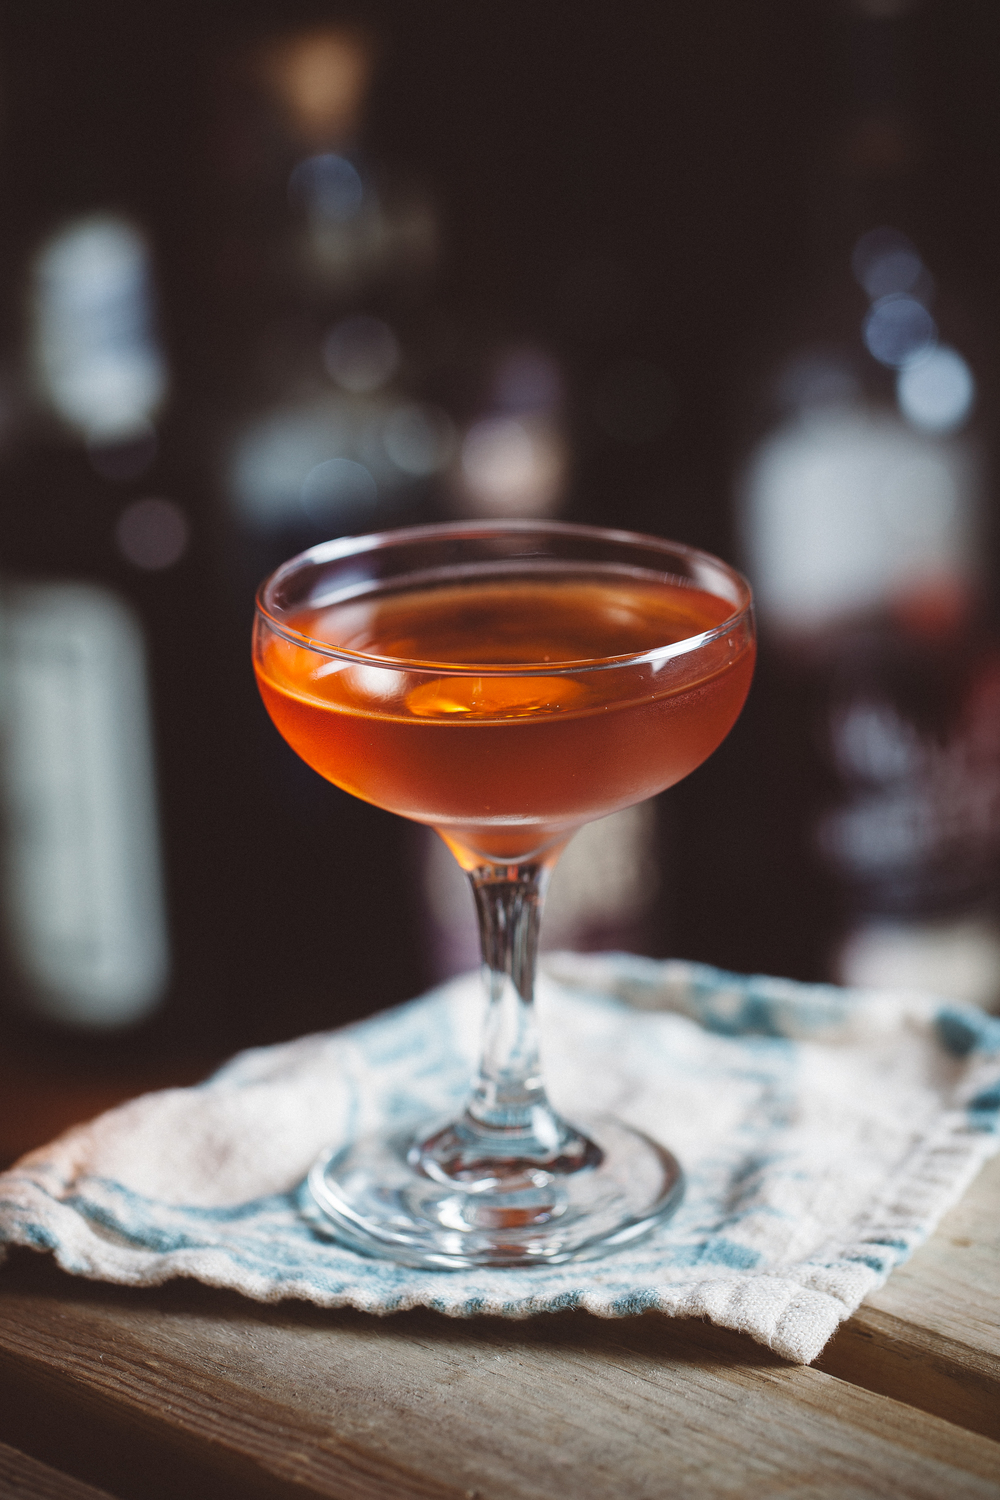 Daisy Buchannan with chamomile infused Old Overholt straight rye whiskey, Aperol, Dolin dry vermouth and Yellow Chartreuse.